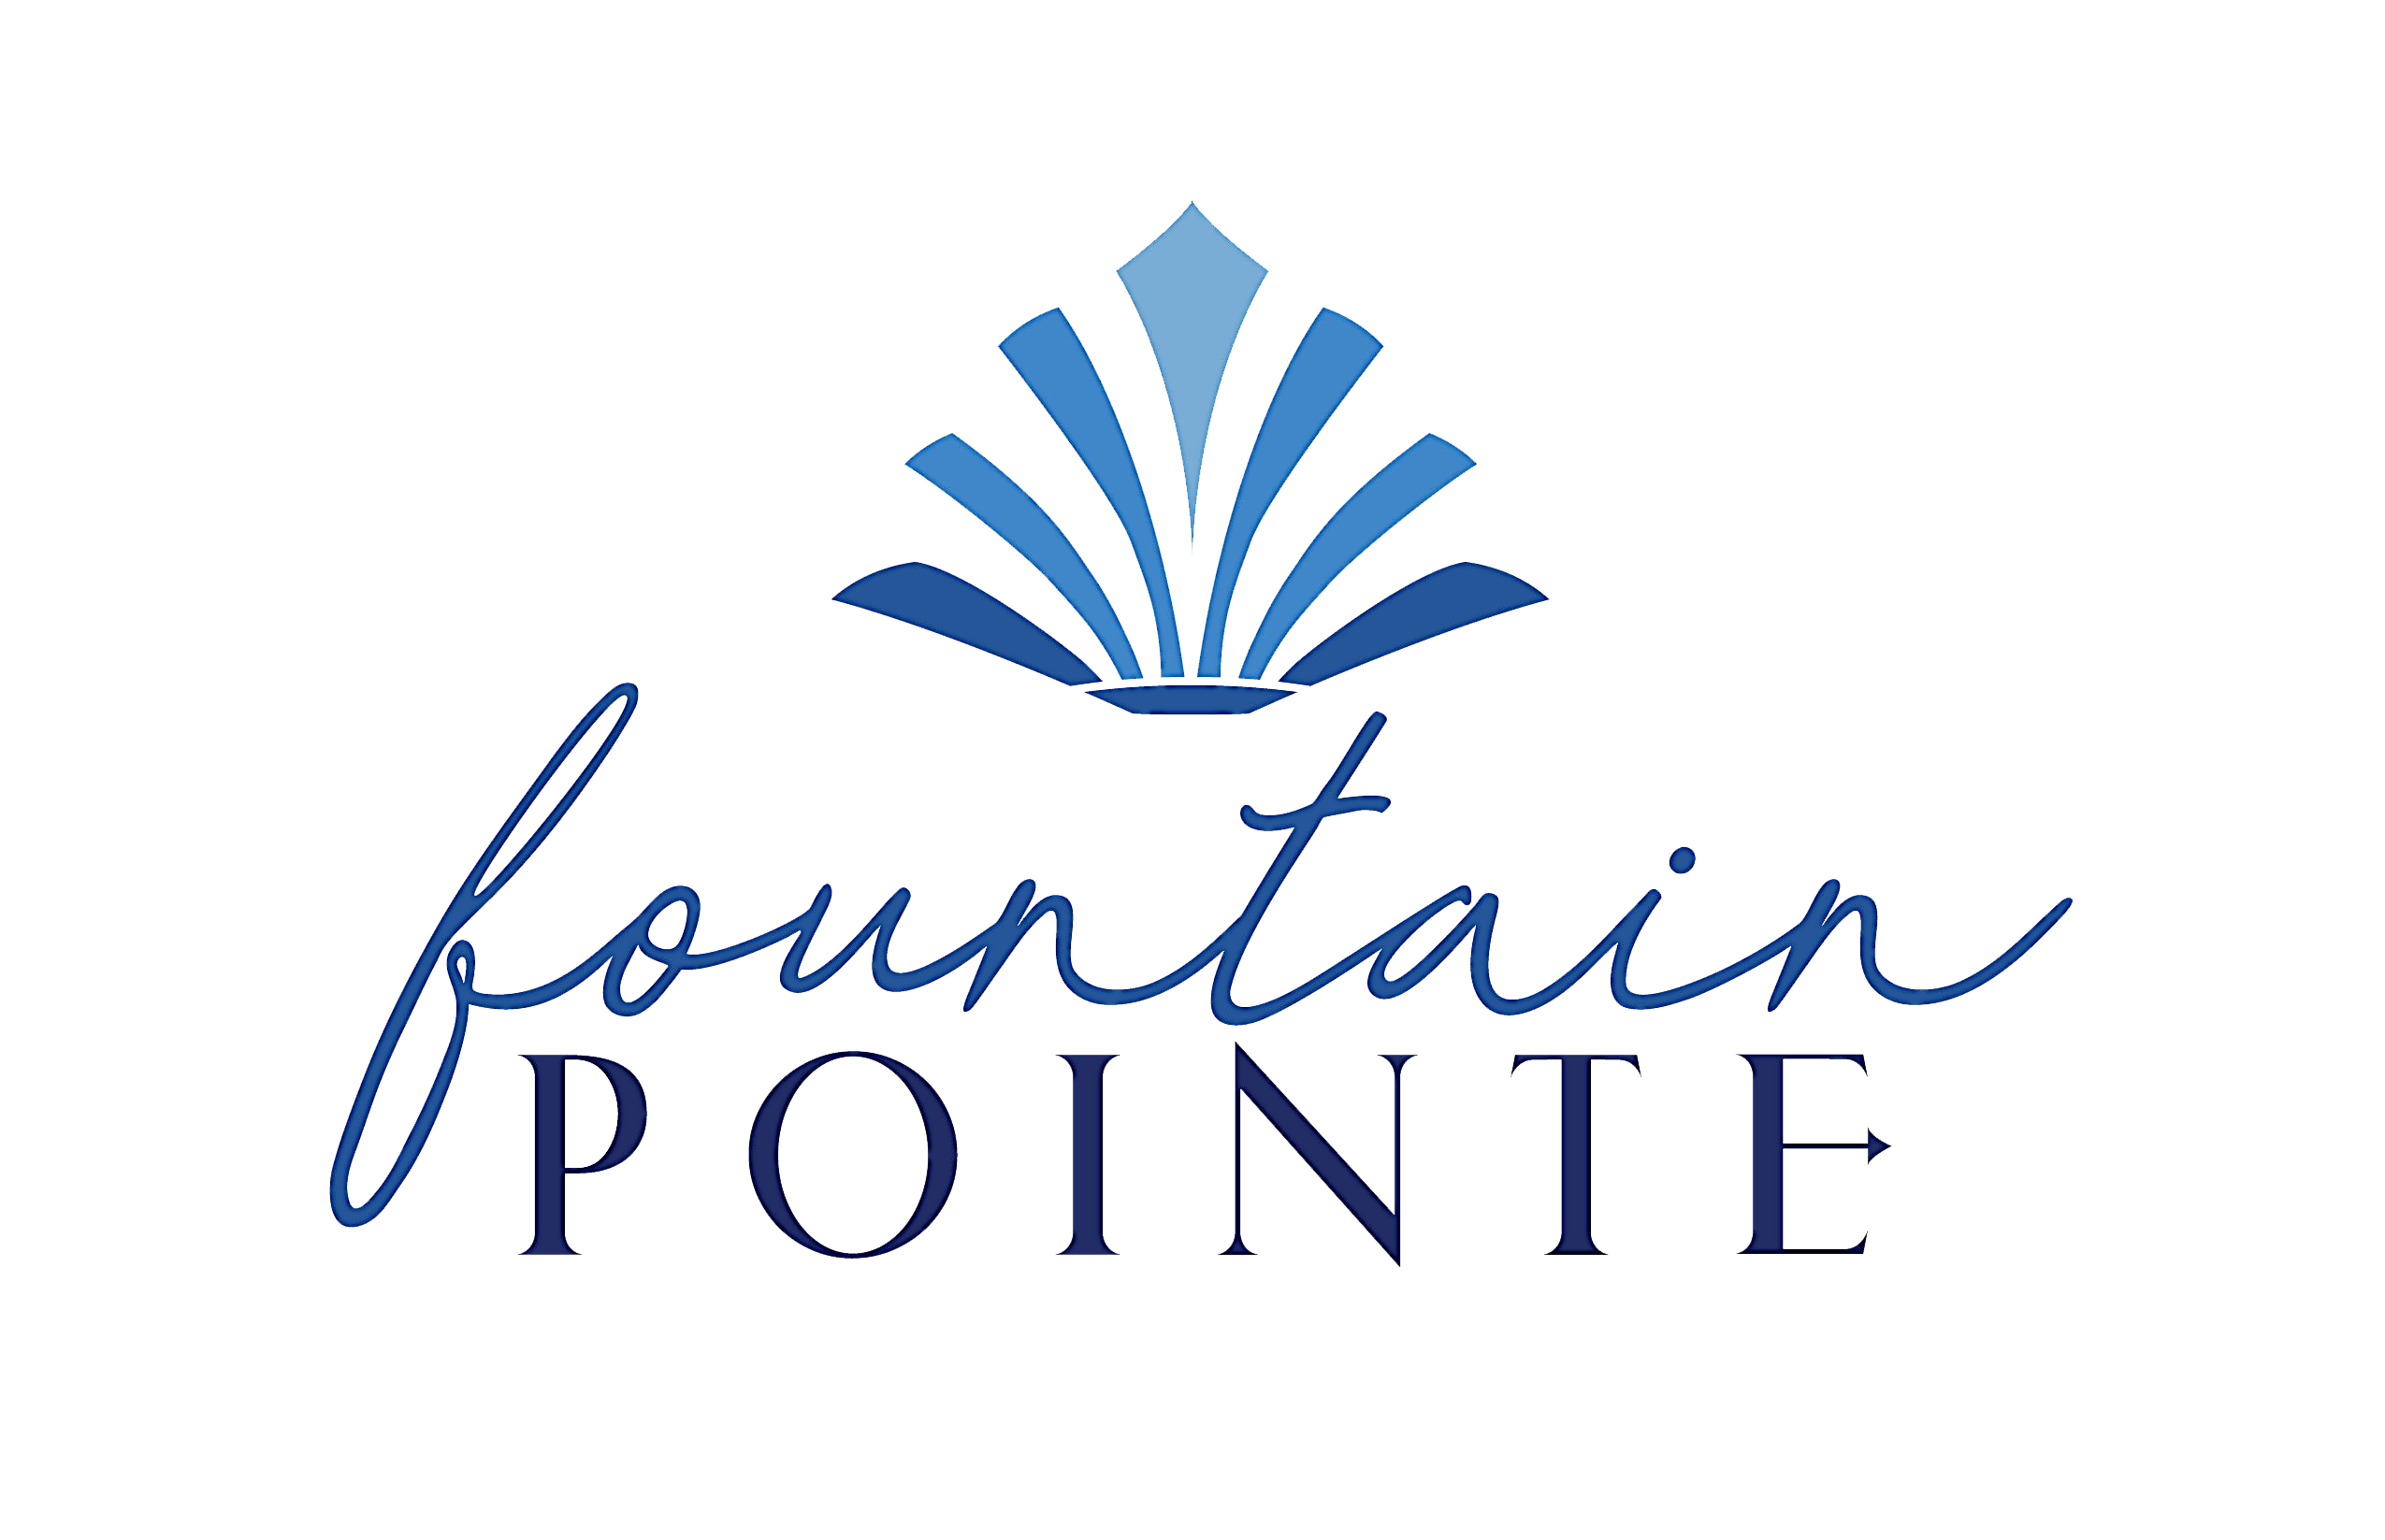 Fountain_Pointe_ClrSTACKED vv